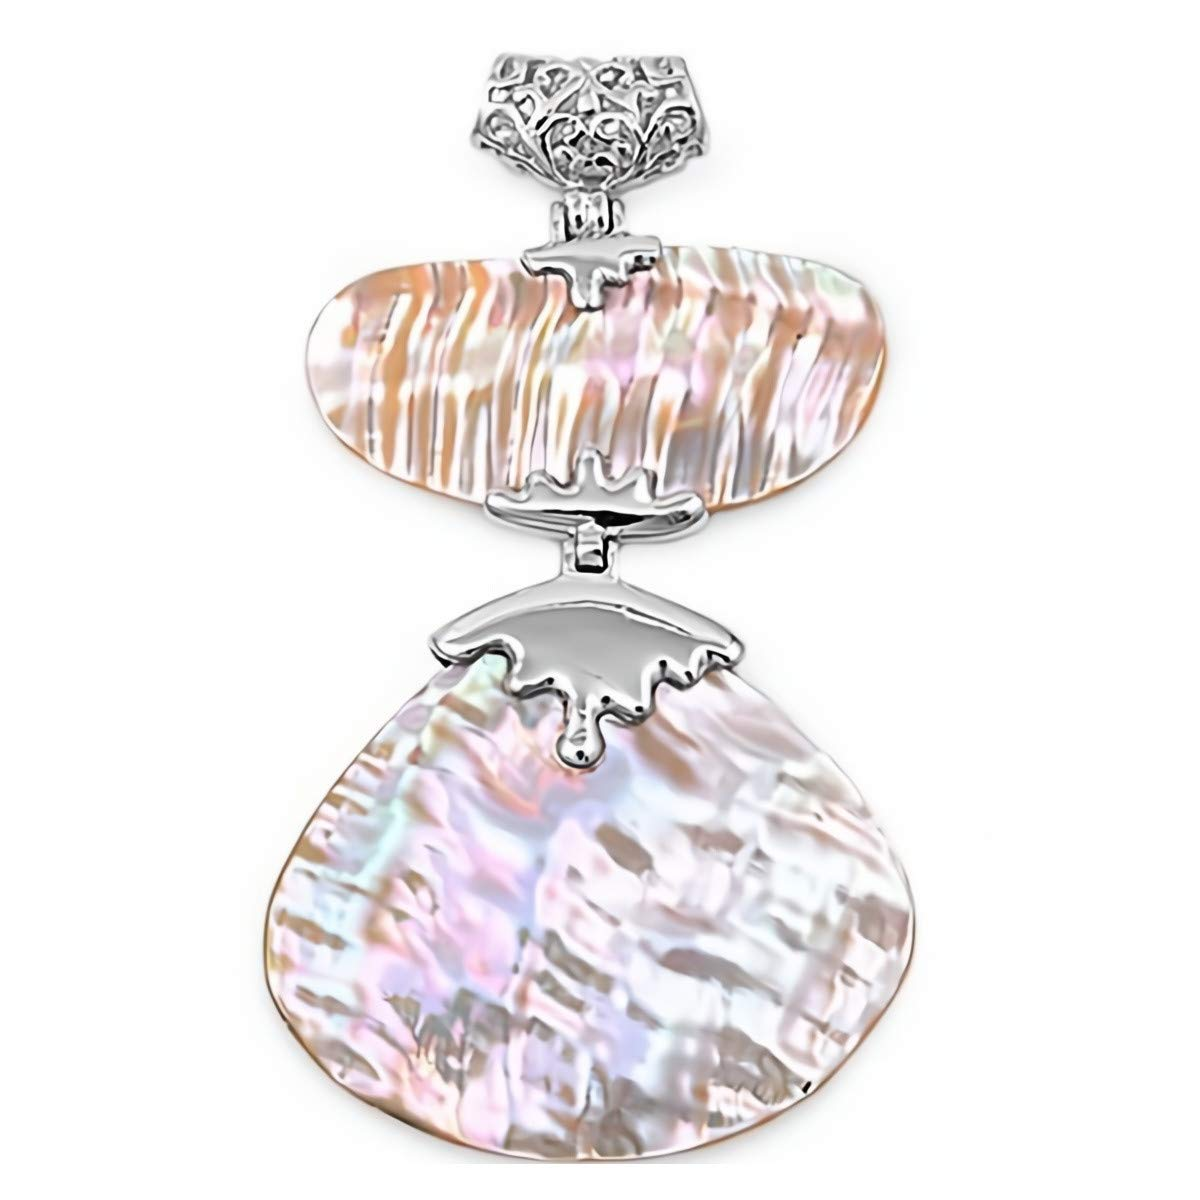 Glitzs Jewels 925 Sterling Silver Pendant with Stone in Gift Box Shell /& Simulated Pearl